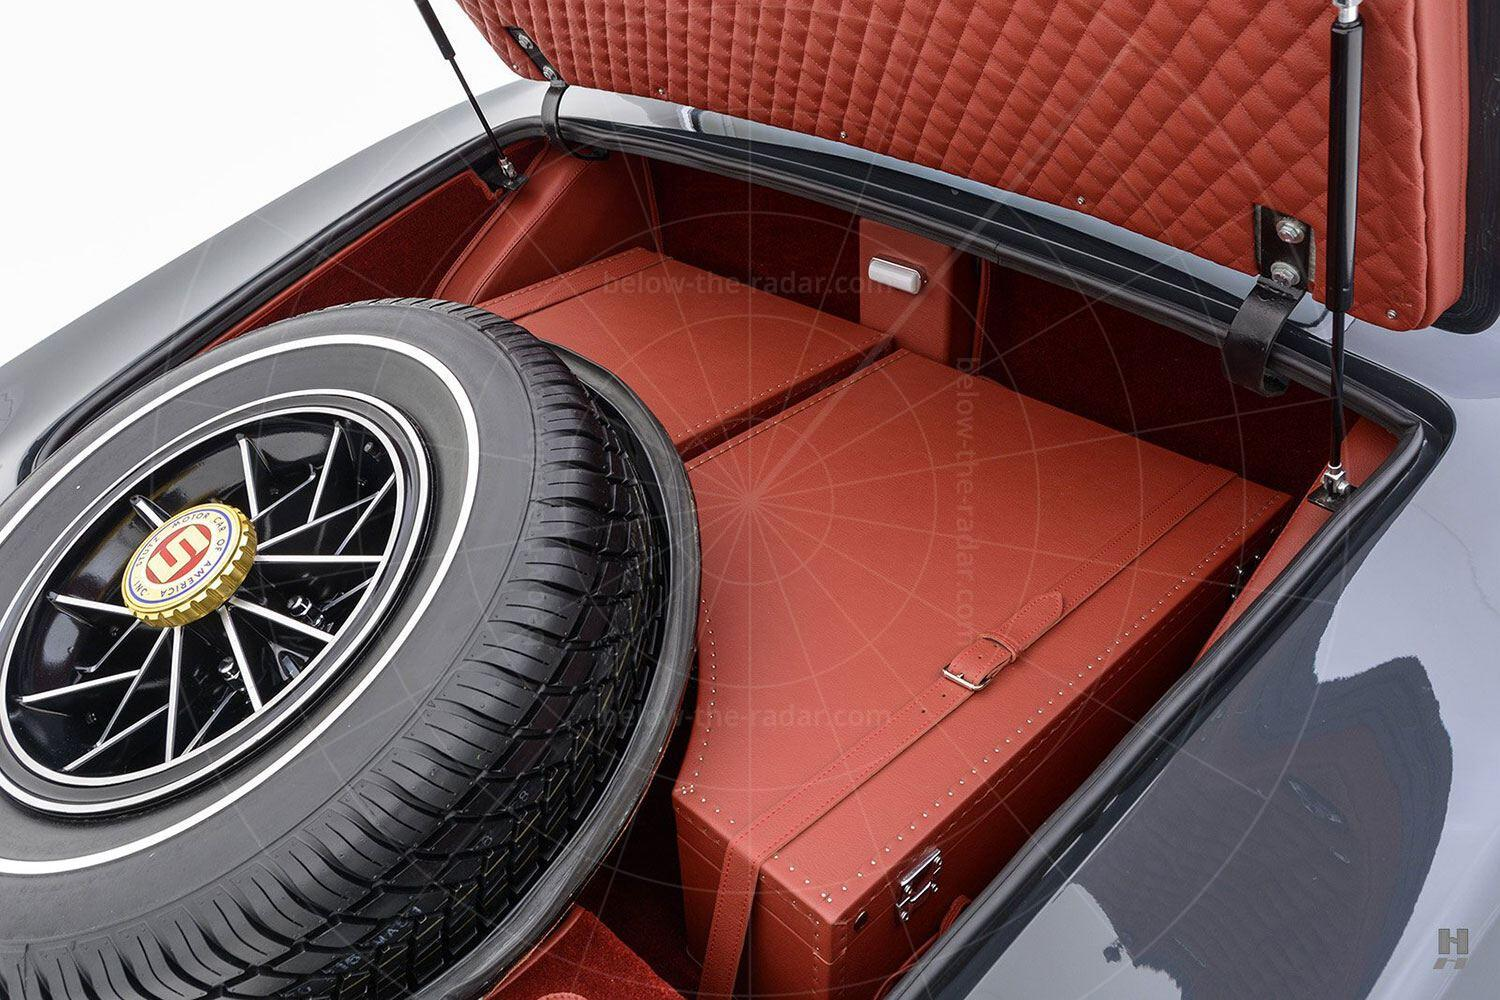 1971 Stutz Blackhawk coupé fitted luggage Pic: Hyman Ltd | 1971 Stutz Blackhawk coupé fitted luggage